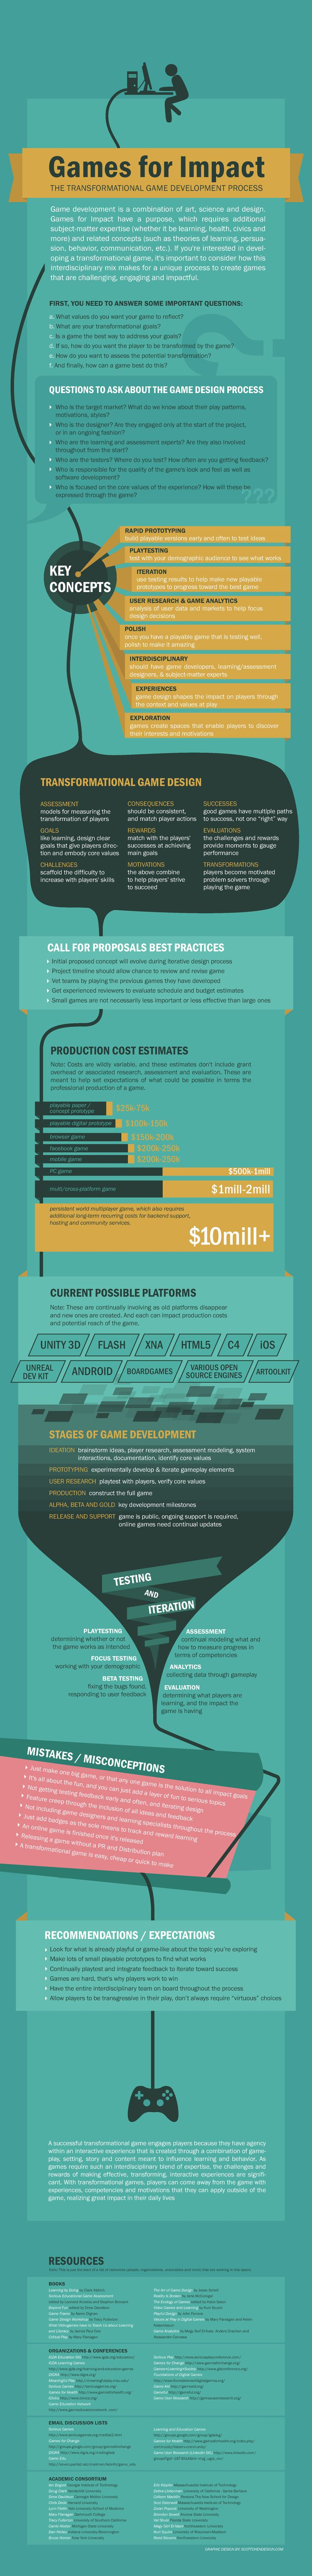 games for impact the transformational game development process gaming gbl - Game Design Ideas